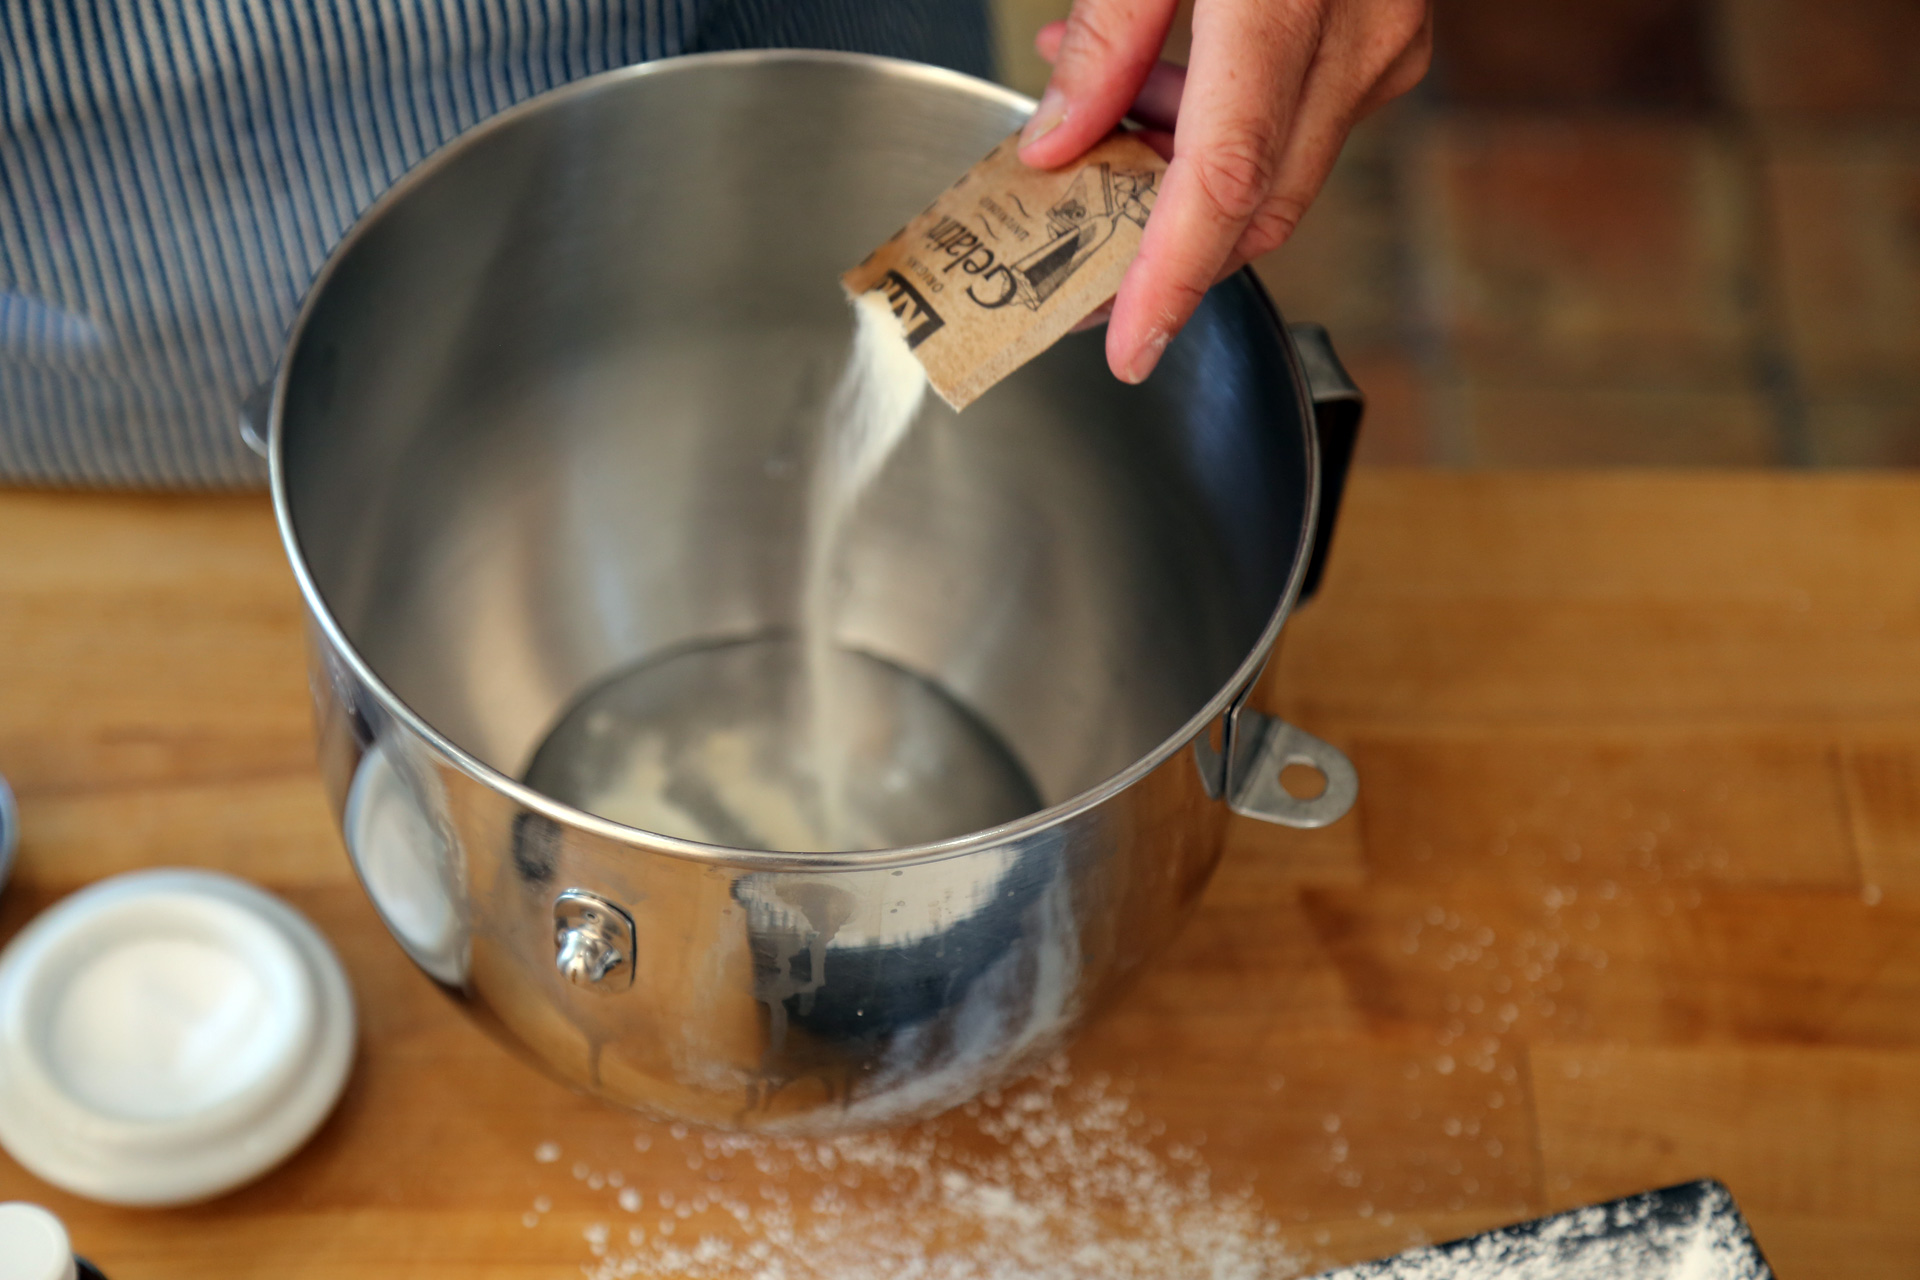 Pour 1/2 cup of cold water into the large bowl of a stand mixer. Sprinkle the powdered gelatin over the water.